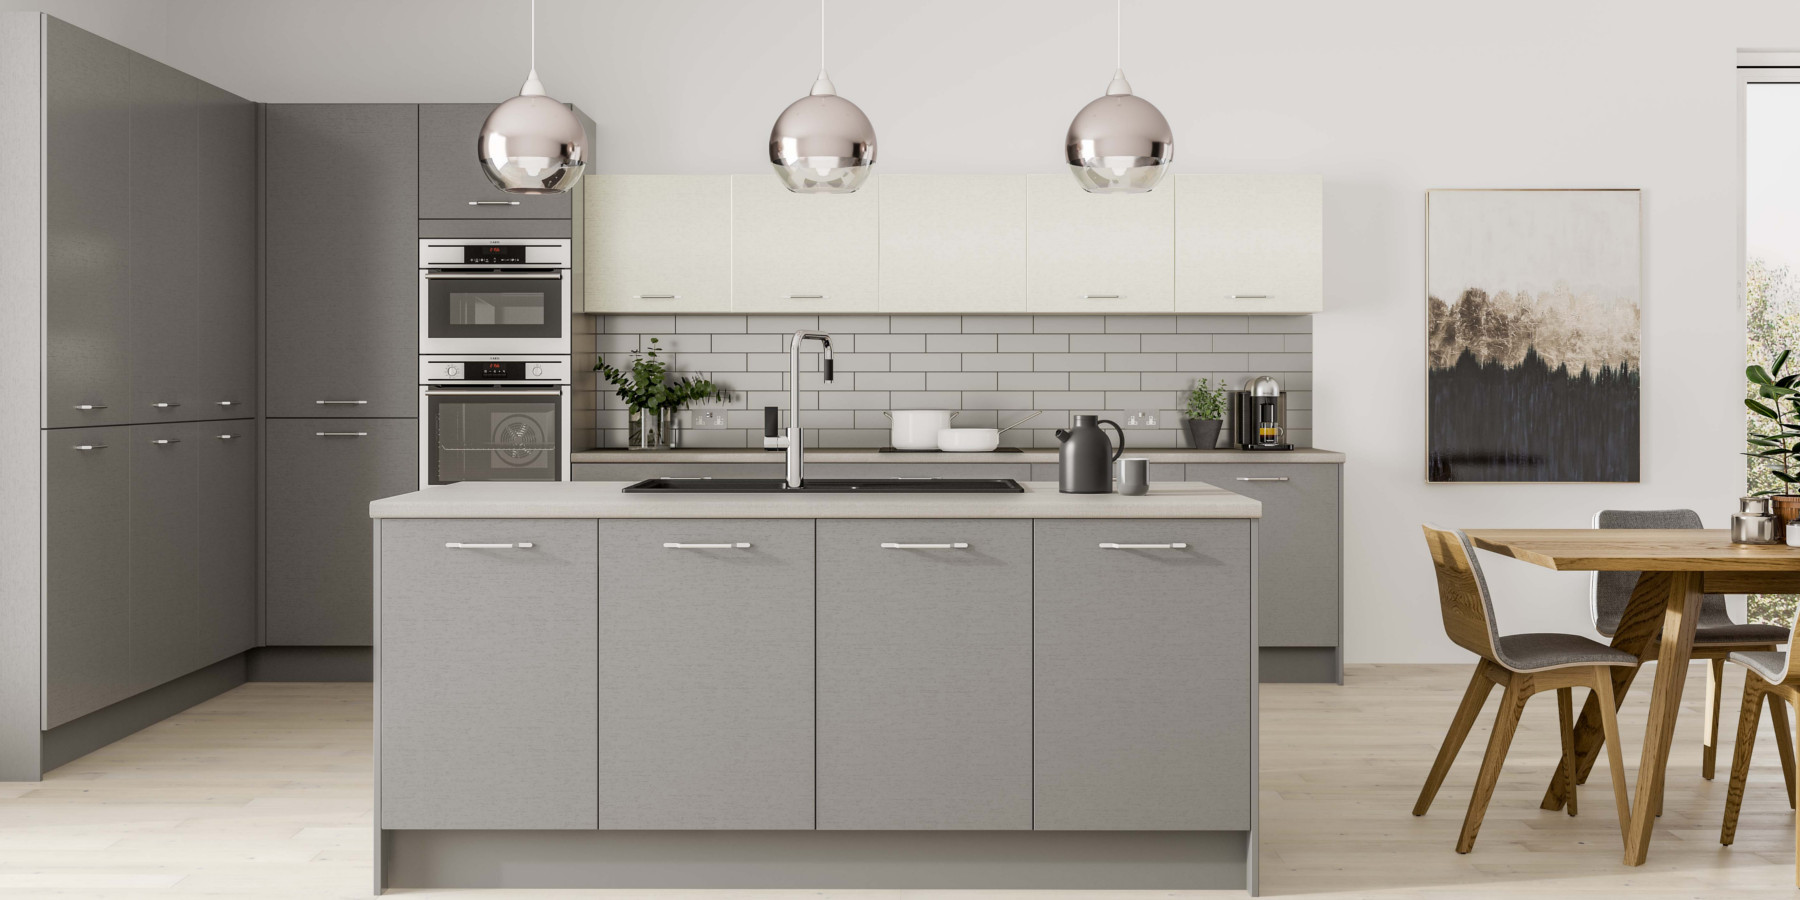 Kitchens Plaza Gallery Milano Symphony Group Uk